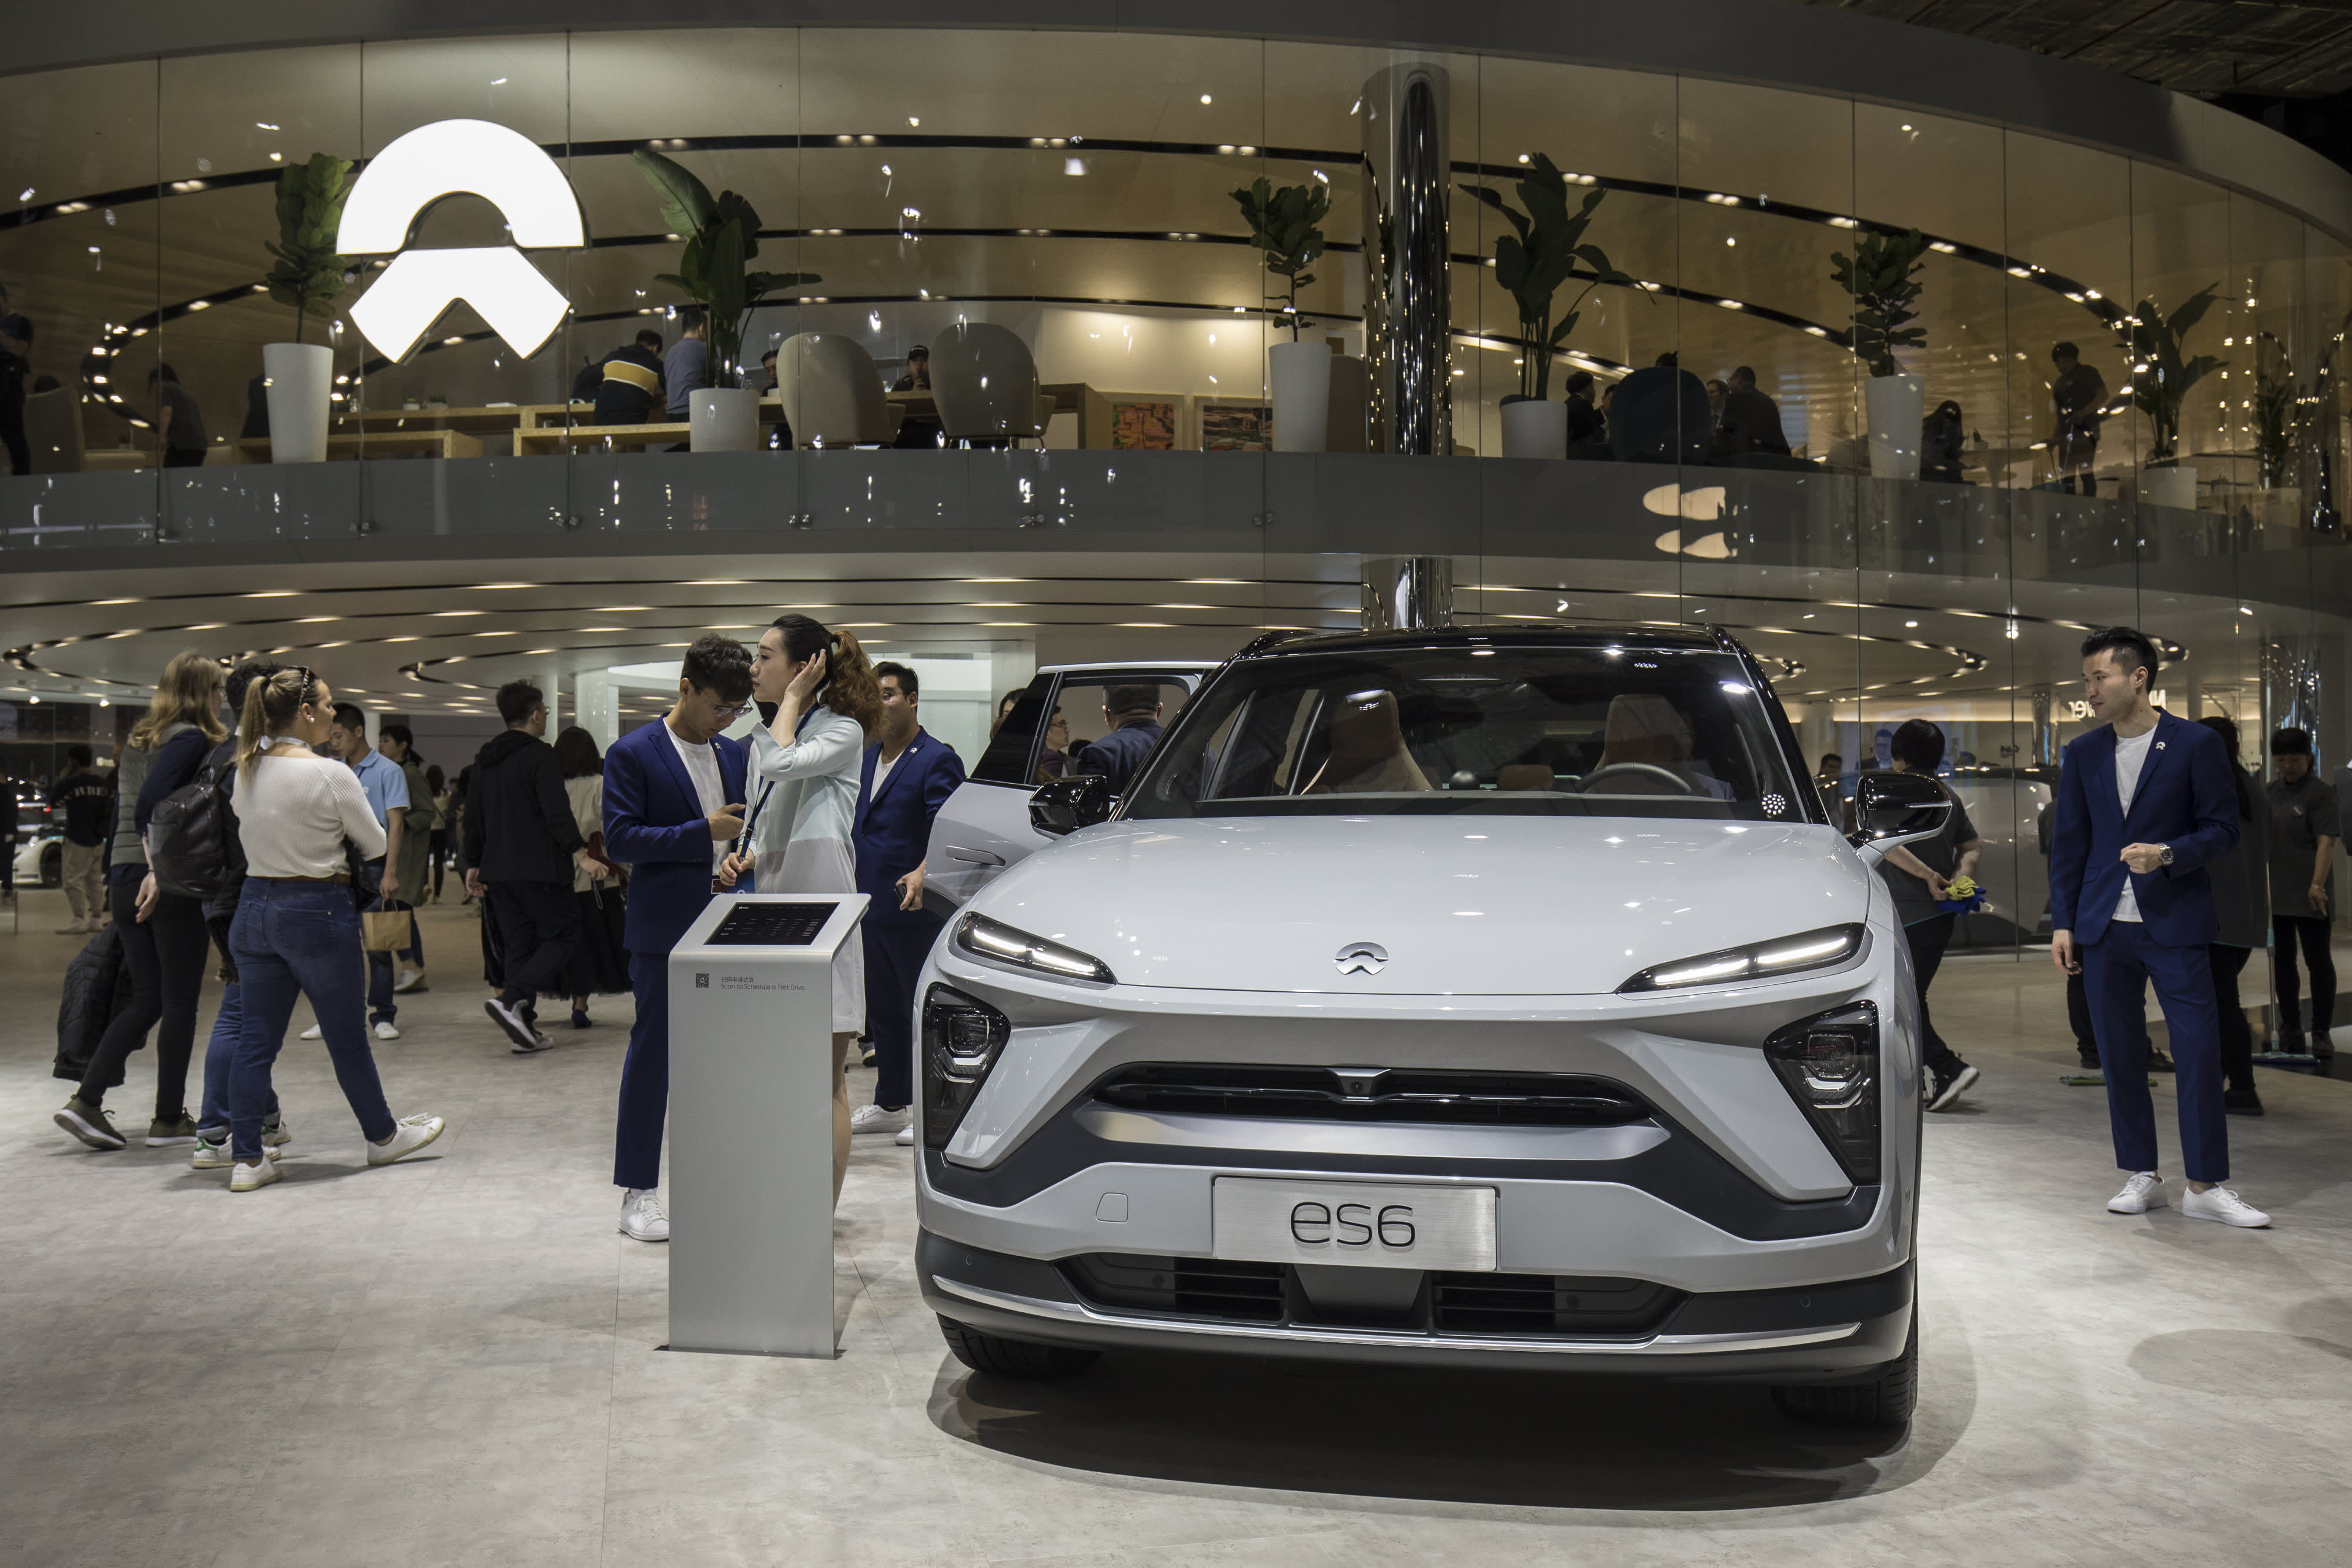 Electric Vehicle Company Nio Could Be The Tesla Of China Piper Sandler Says